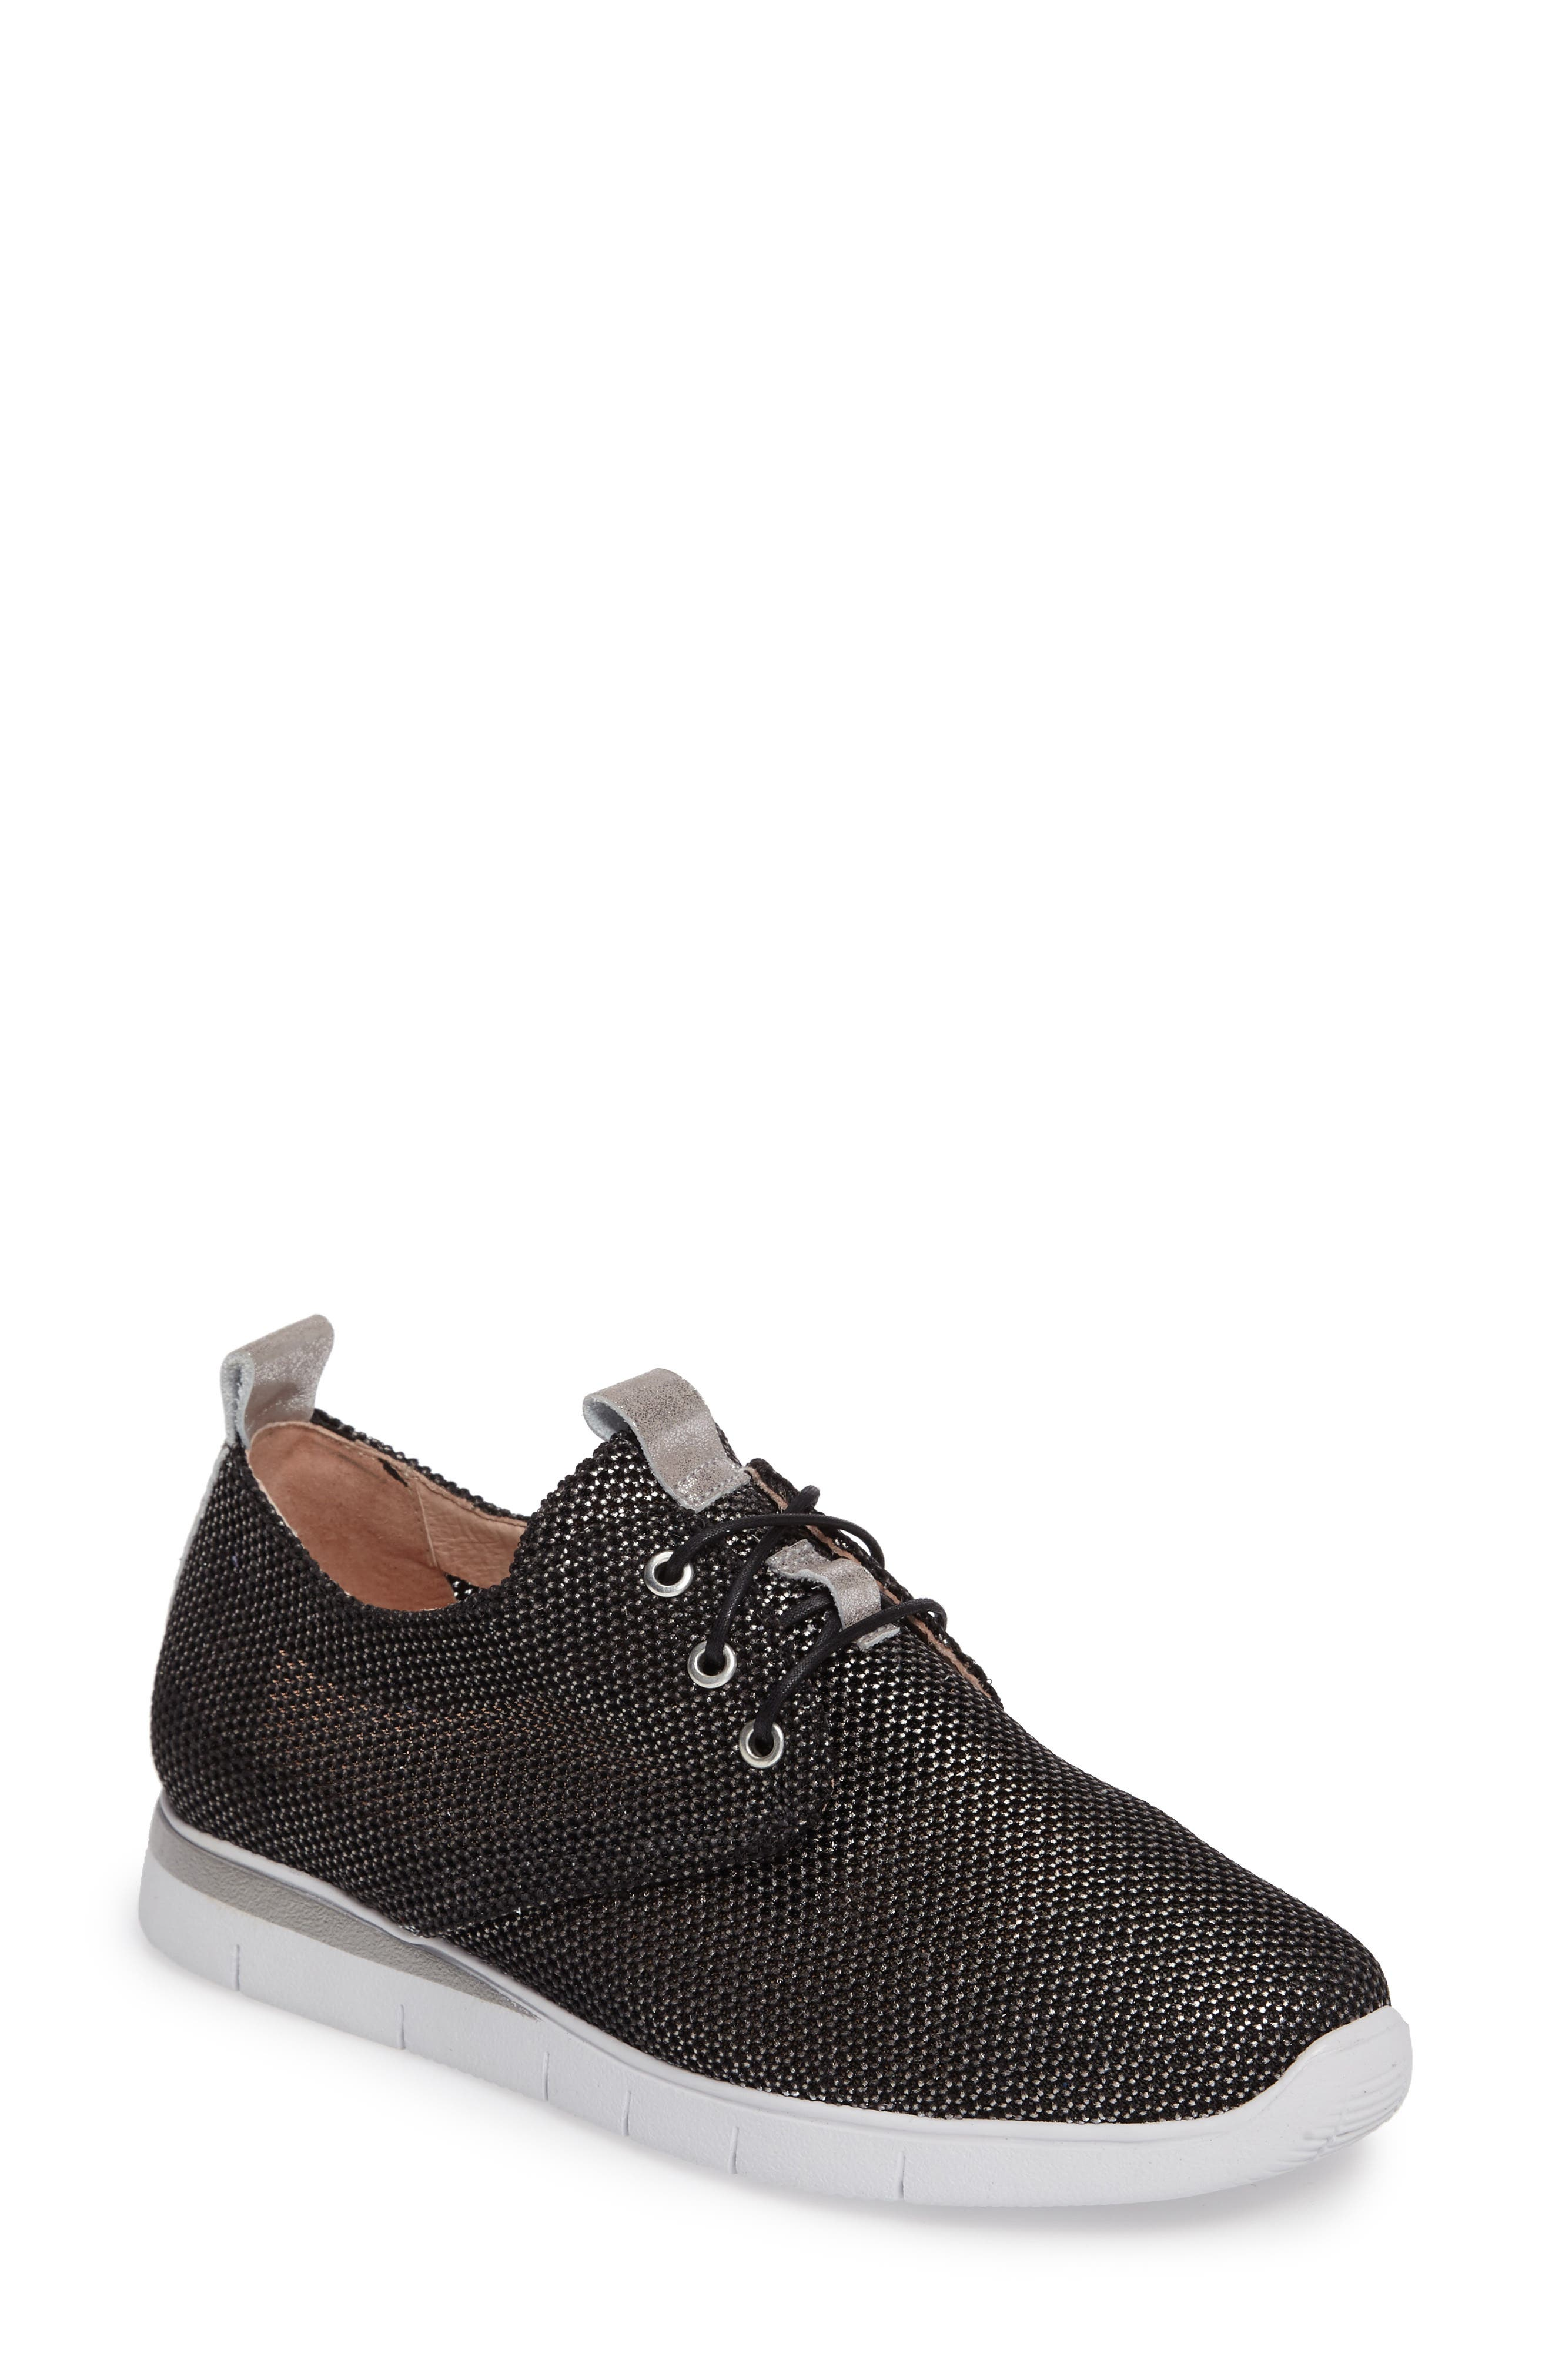 Gala Perforated Sneaker,                             Main thumbnail 1, color,                             Bionic Black Leather